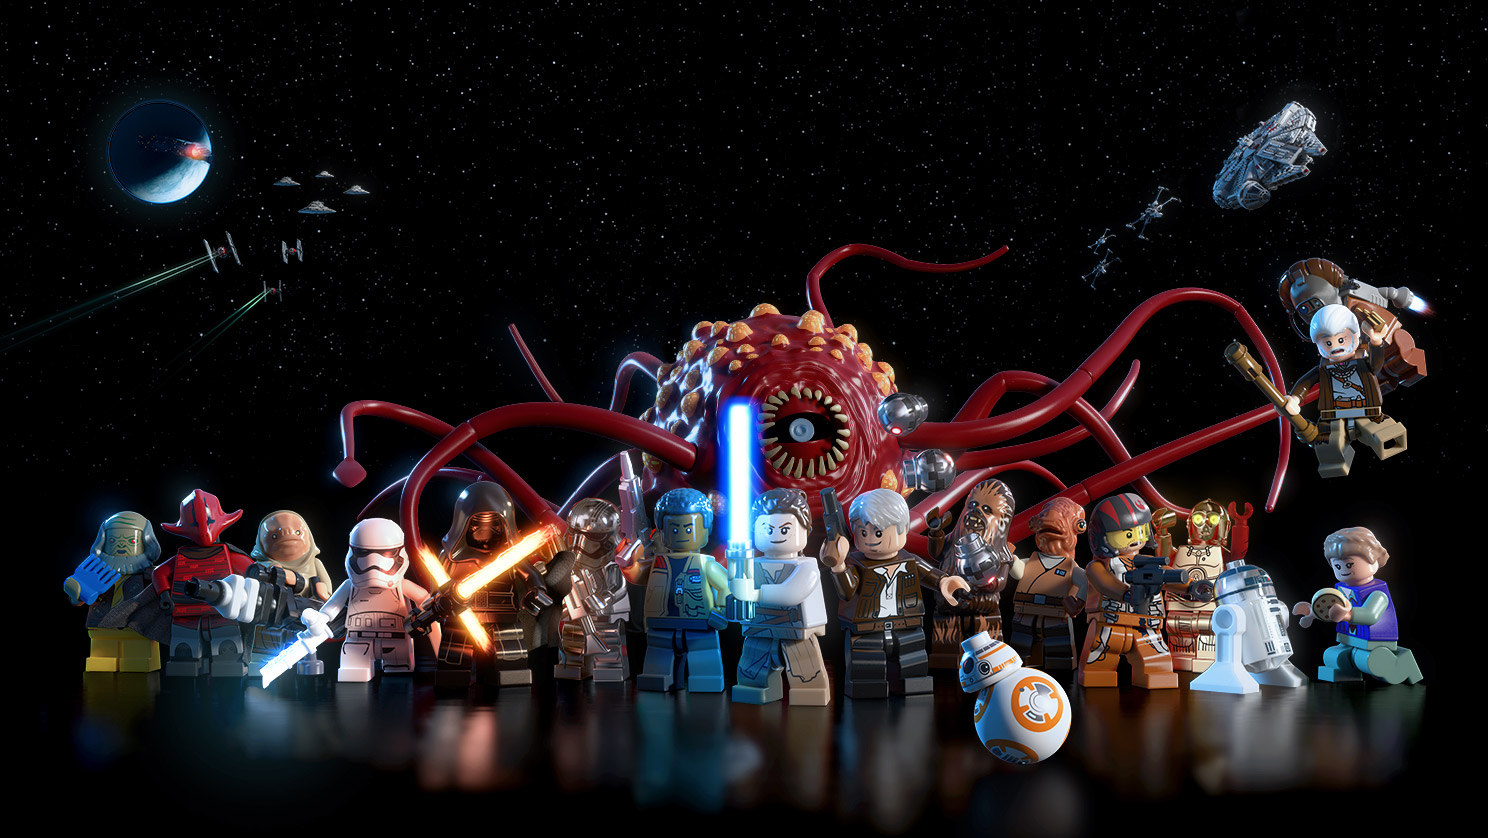 Test lego star wars le r veil de la force ps4 - Personnage de starwars ...